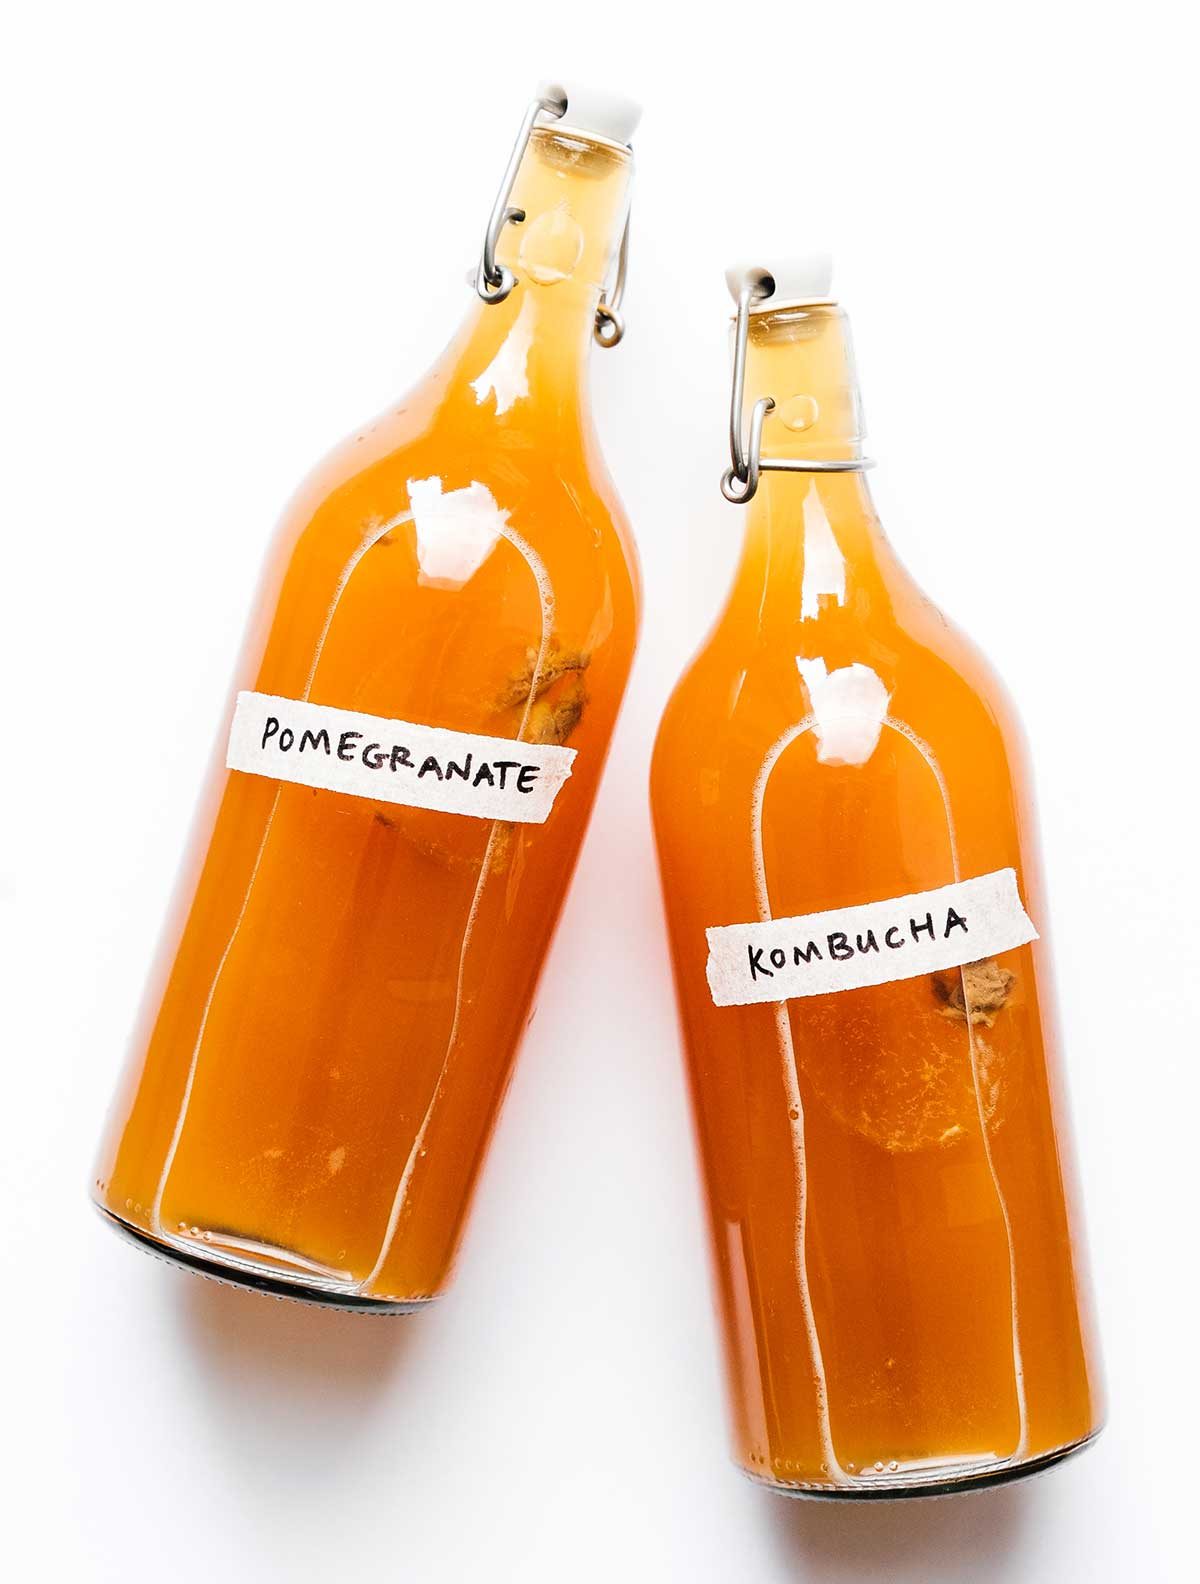 Pomegranate kombucha in fermentation bottles on white background